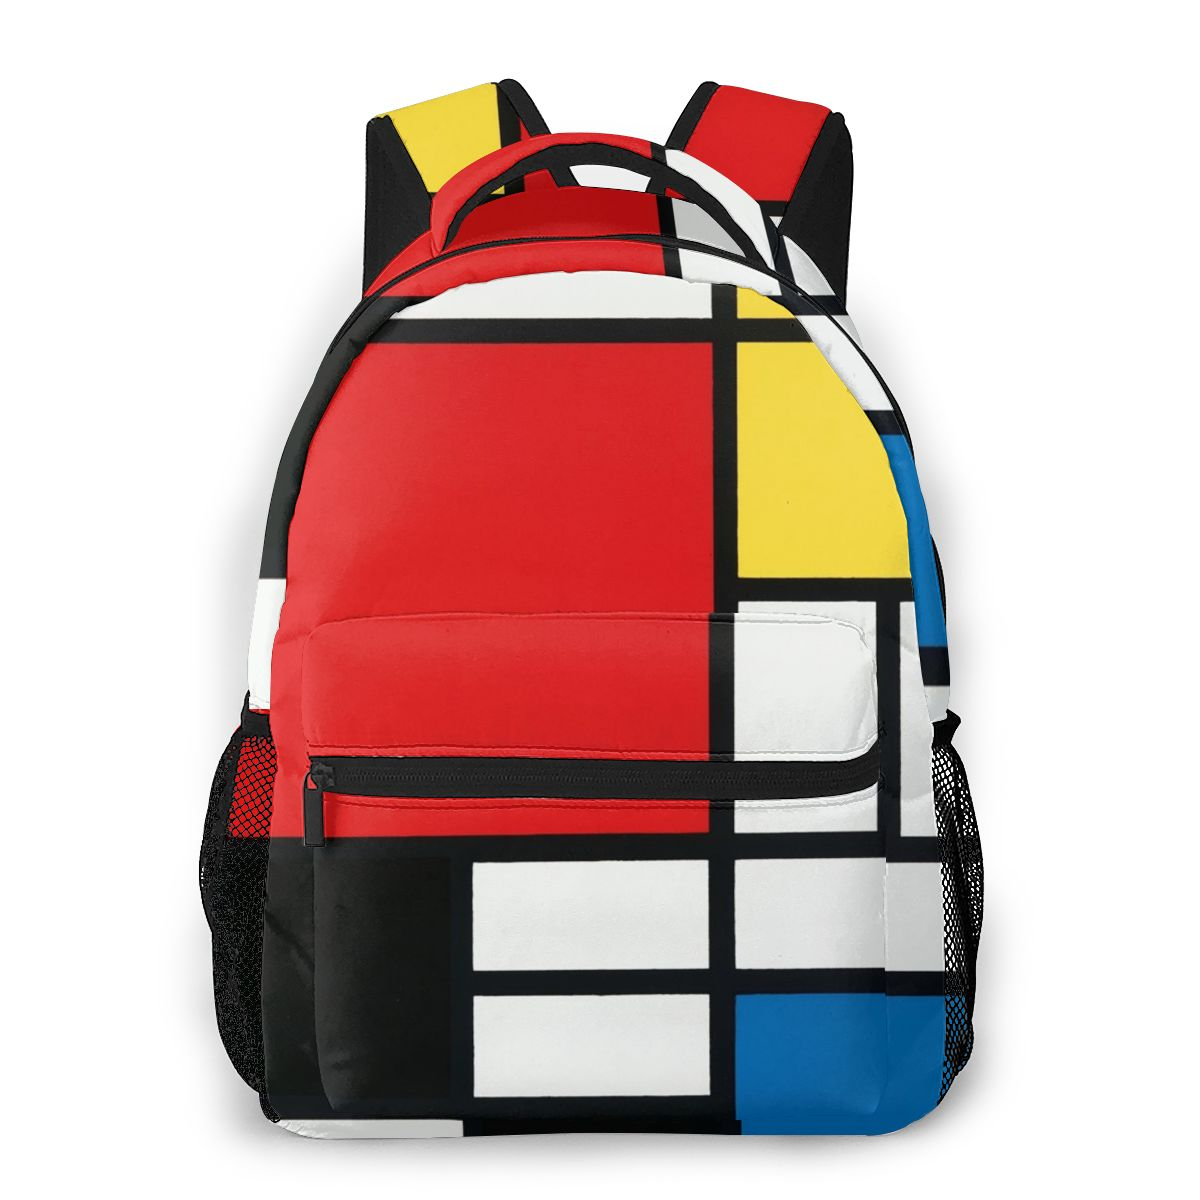 Piet Mondrian Backpack School Bags Casual For Teenager Girls Shoulder Bag Travel Bags